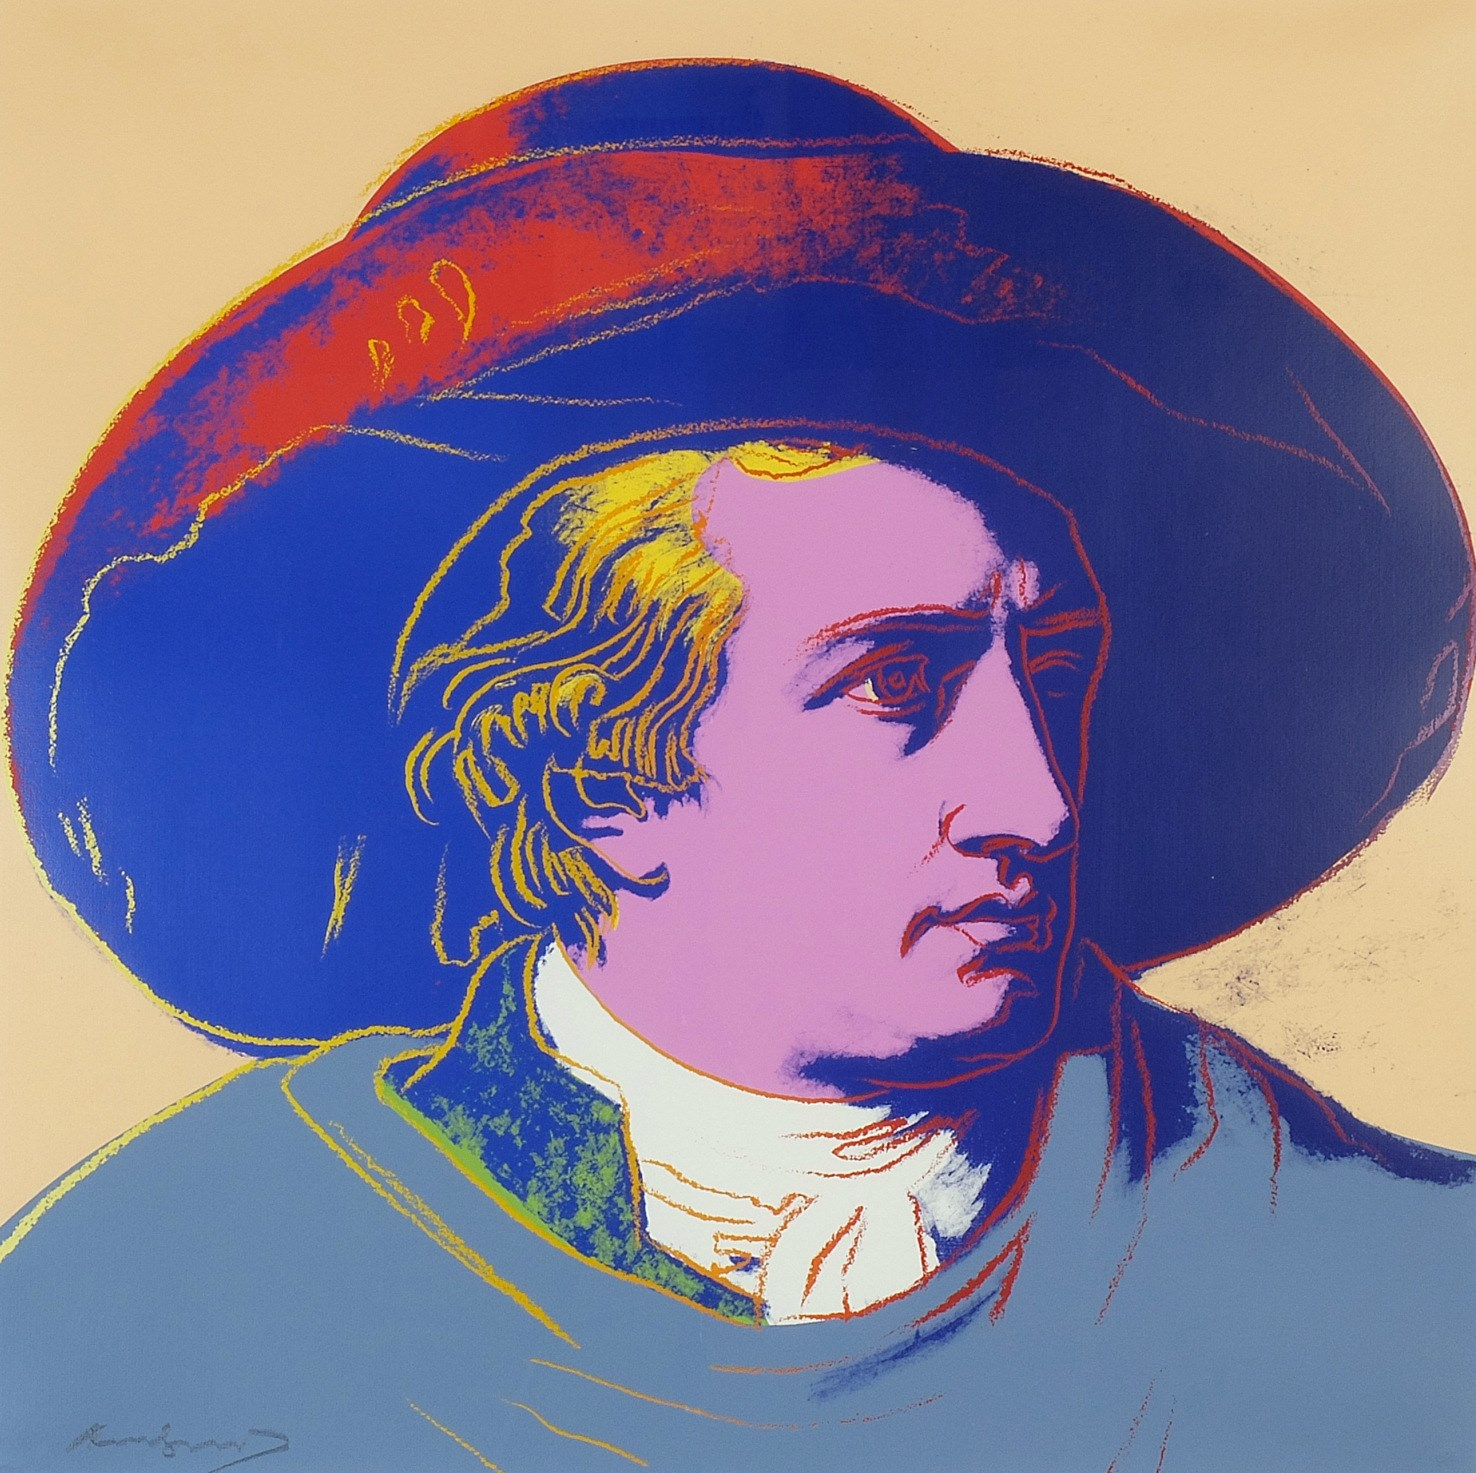 Goethe by  Andy Warhol at Rusterholtz Galerie + Auktionen